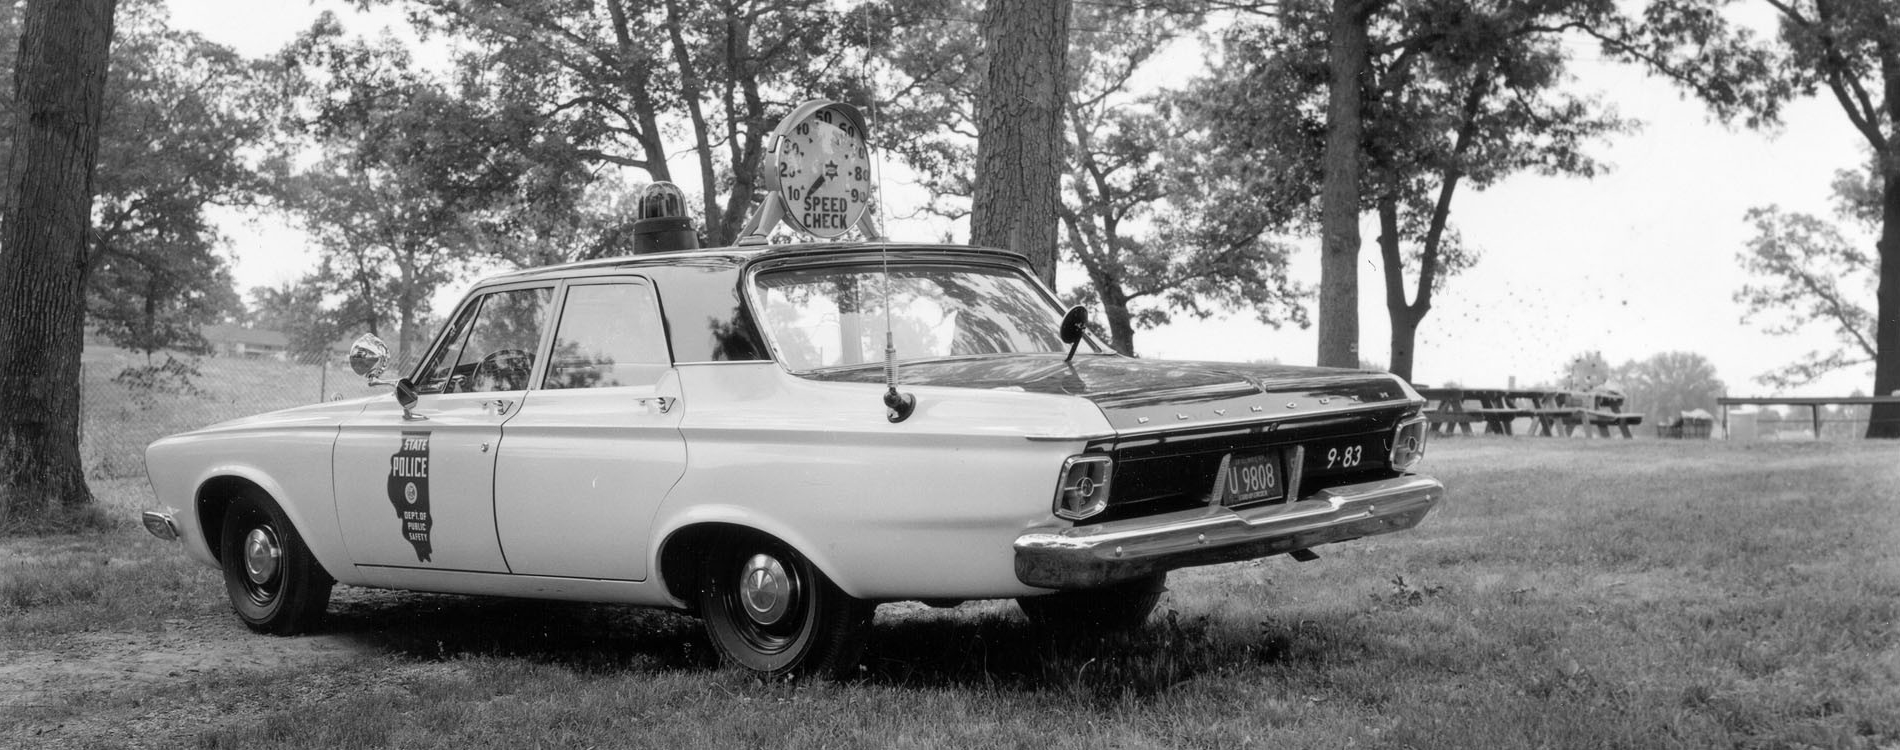 Black and white 1963 Plymouth Savoy with speed check device mounted on the roof.  State Police was part of the Department of Public Safety.